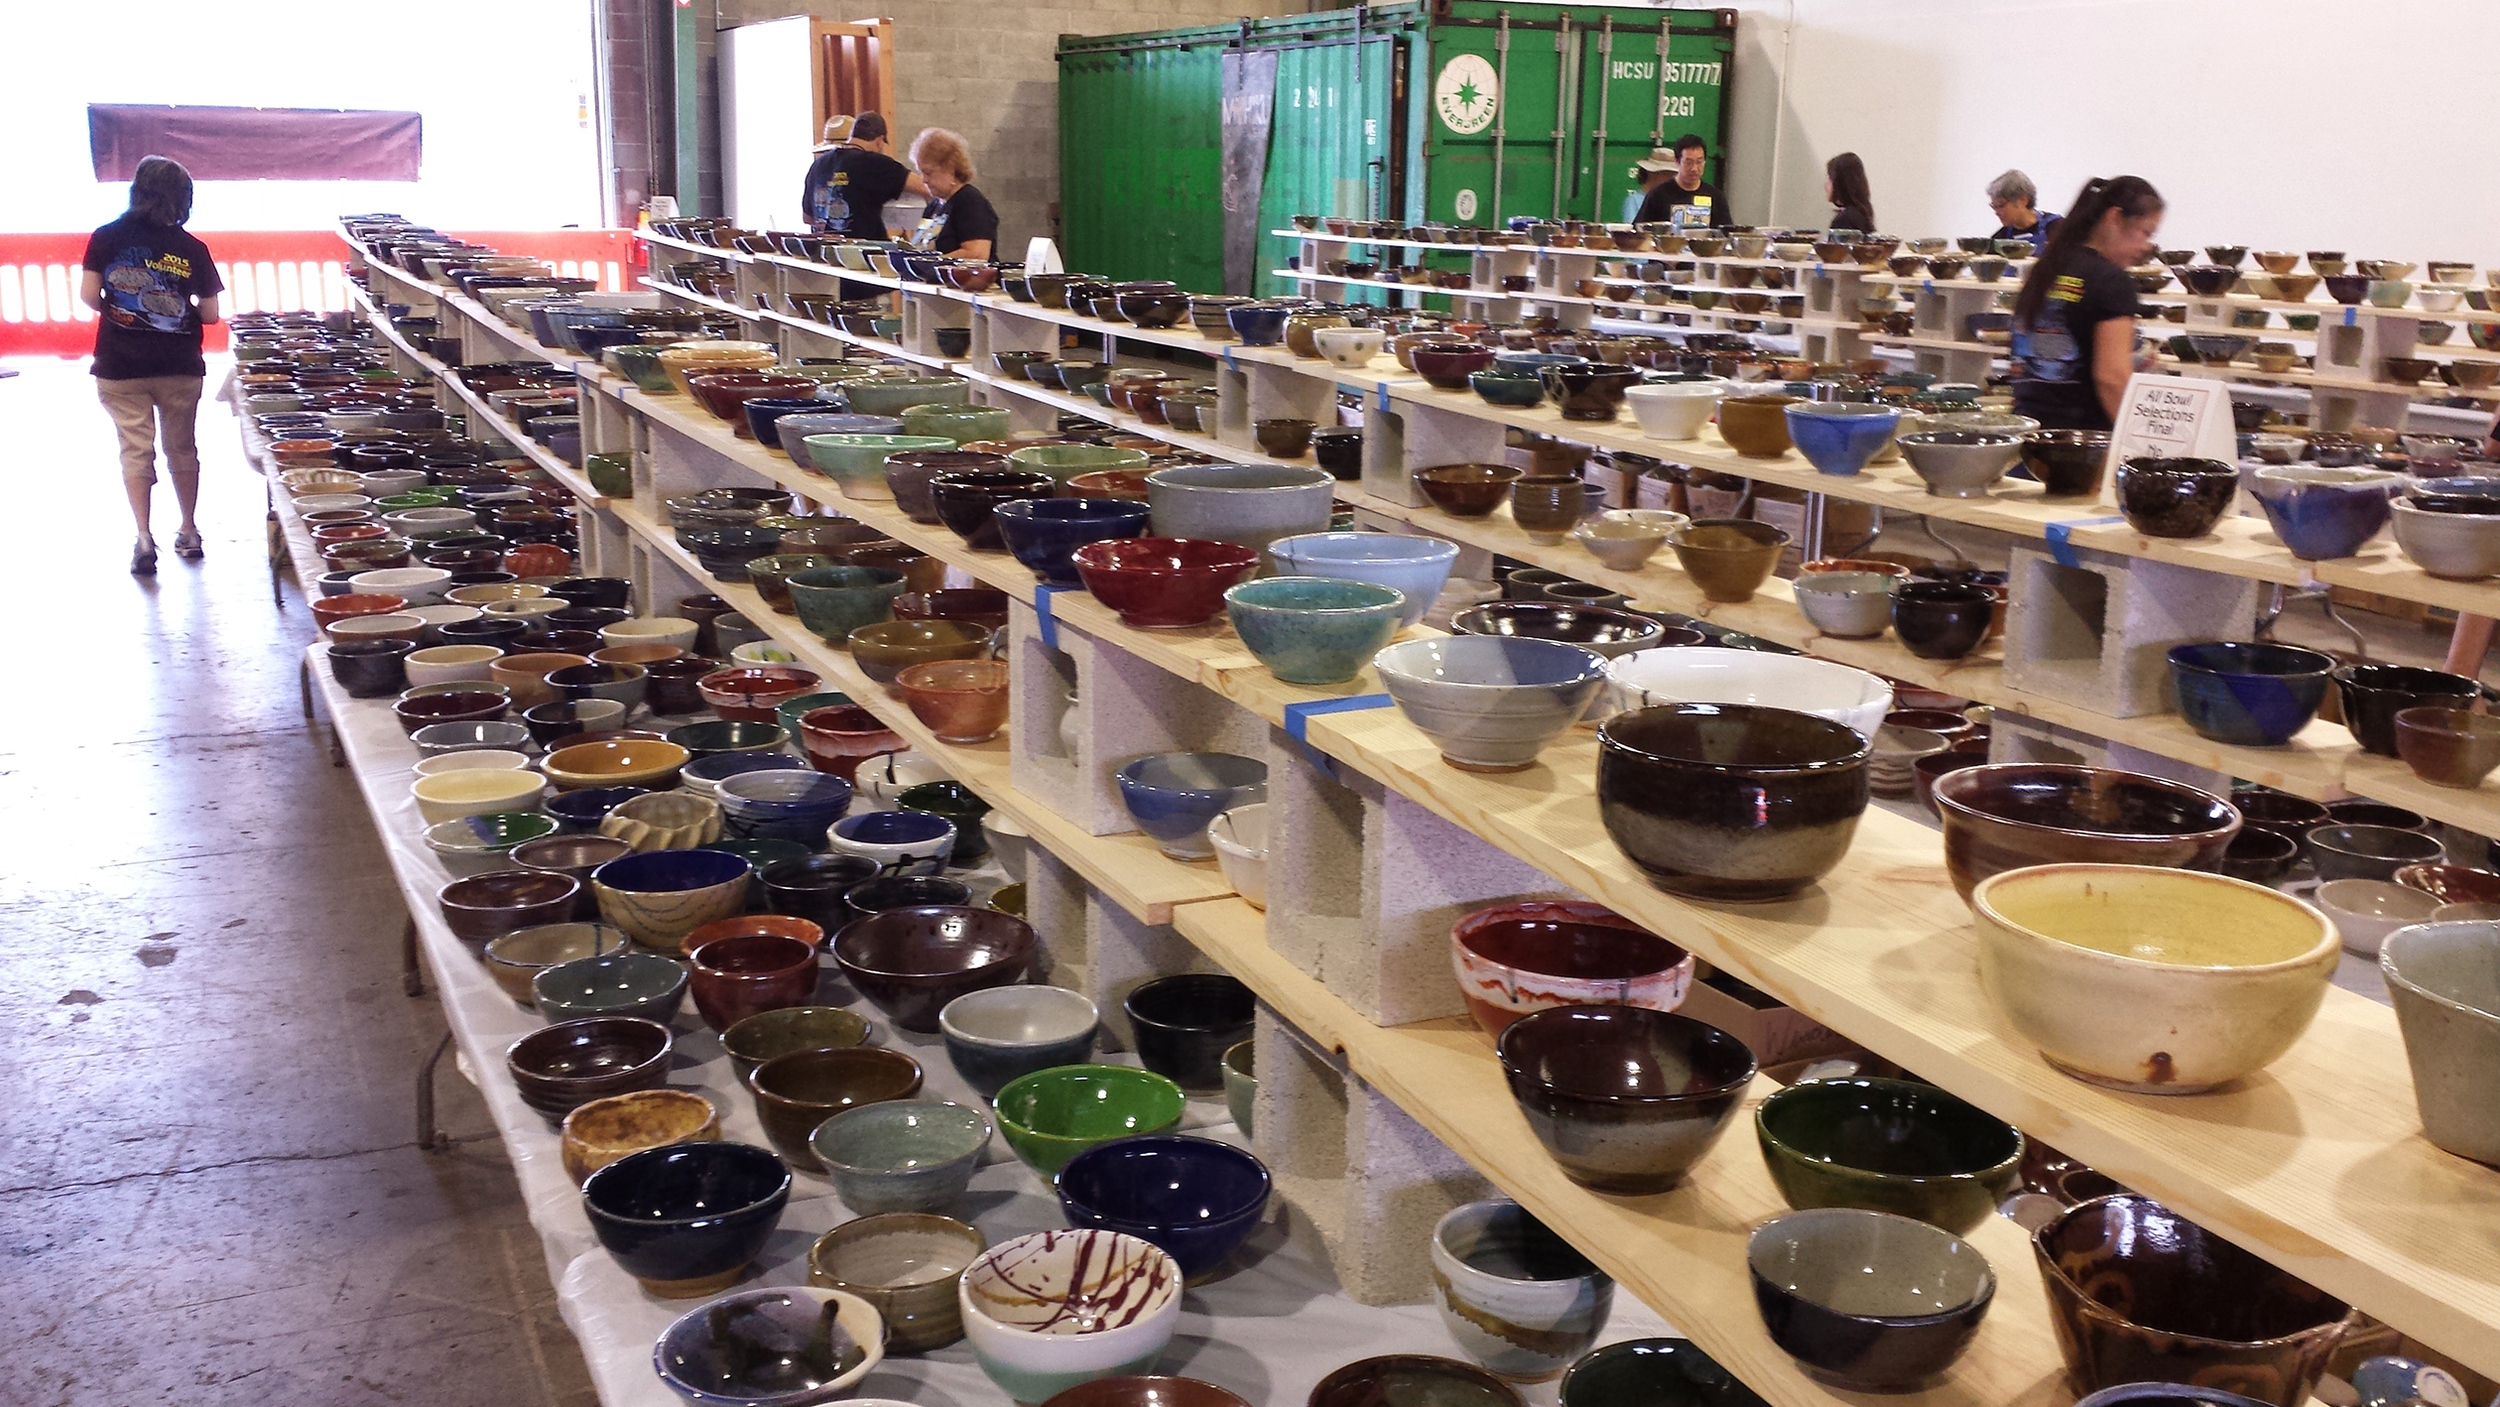 Beautiful ceramic bowls of every size, shape and design awaiting their owners at Empty Bowl Hawaii. Thanks to the many individuals and organizations who created these one-of-a-kind works of art for a great cause.